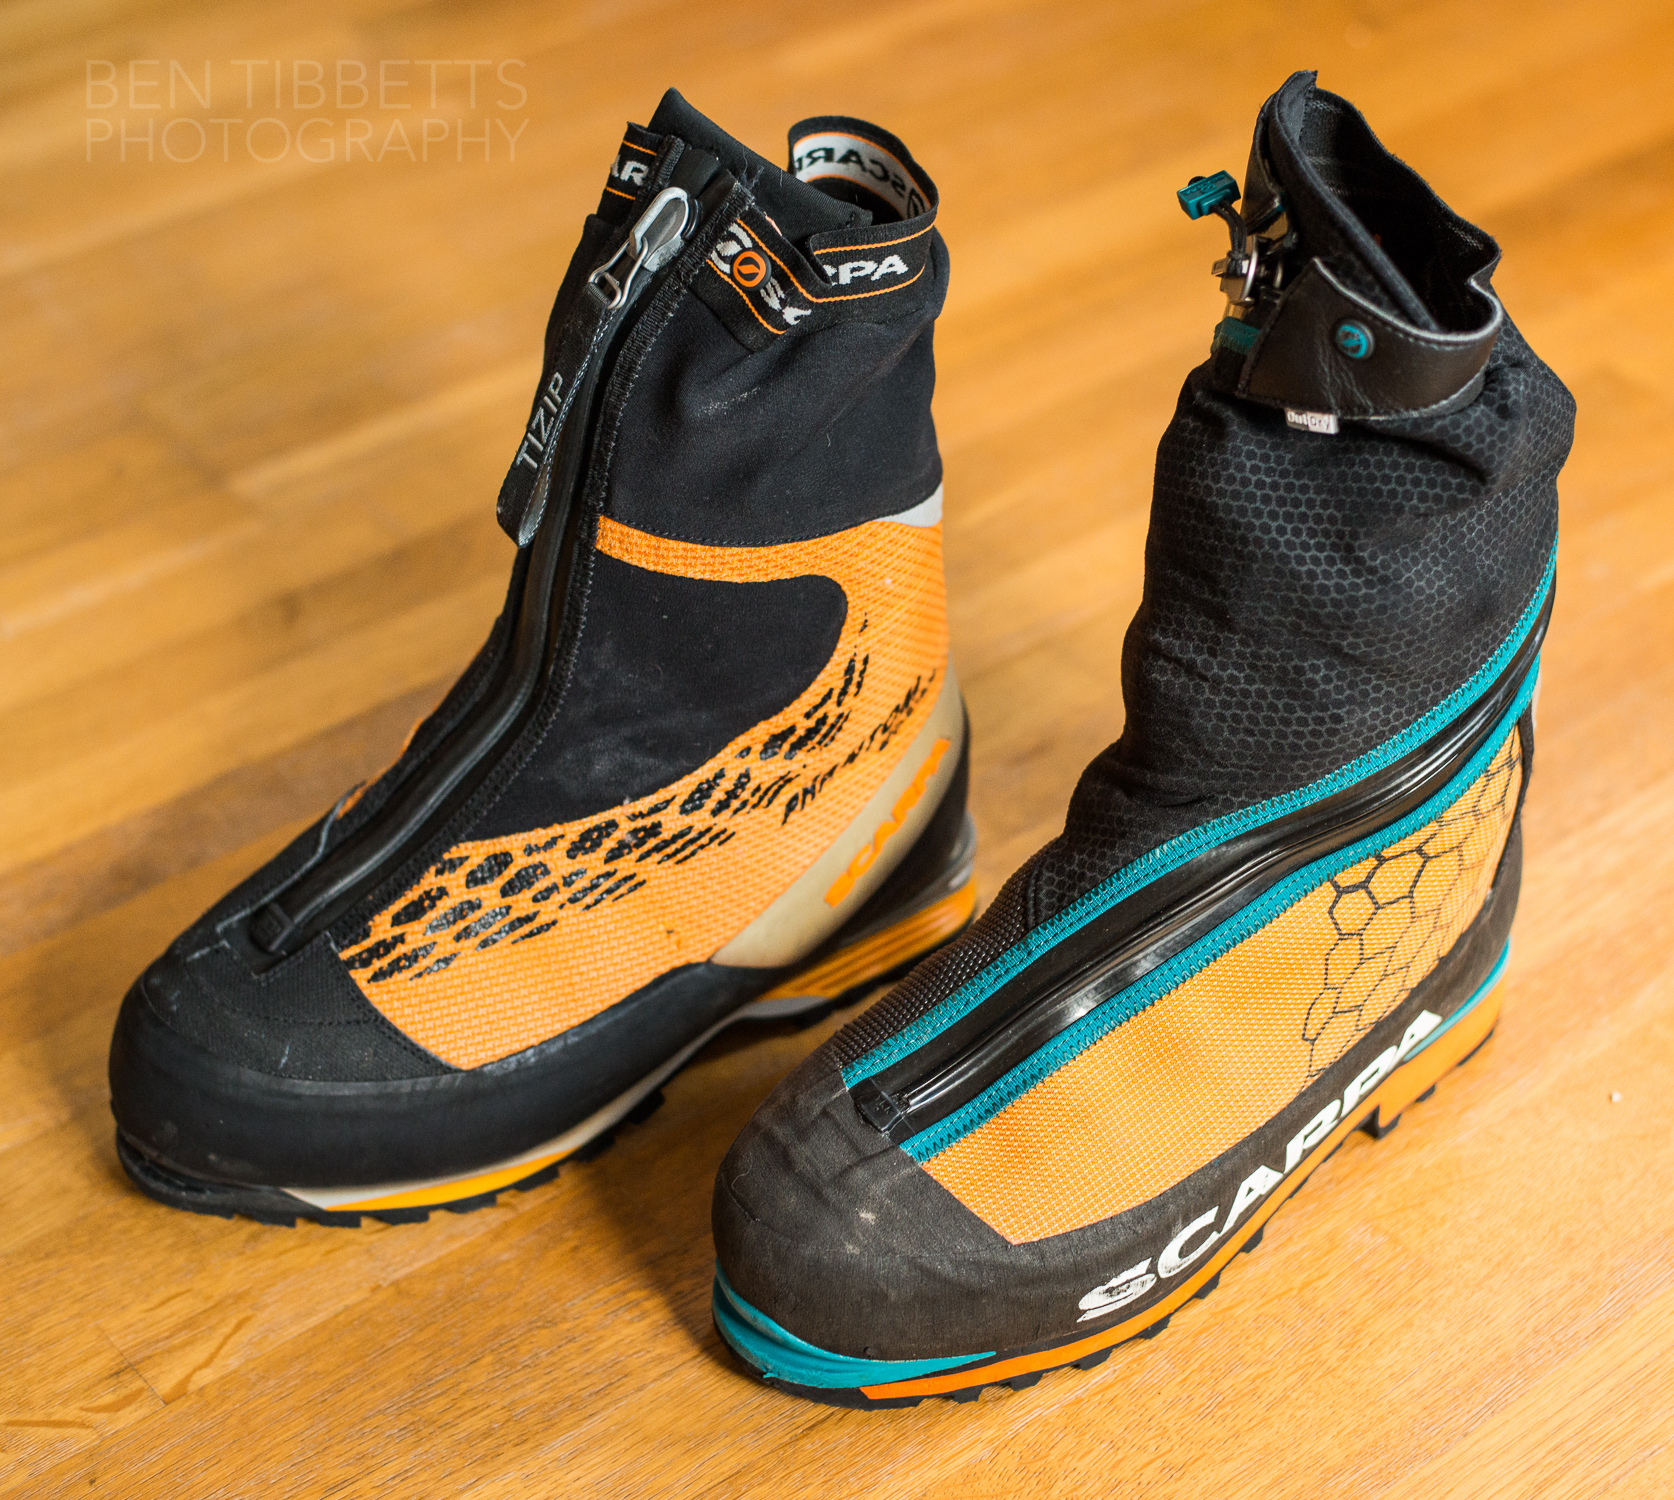 Scarpa Phantom 6000 (p)review